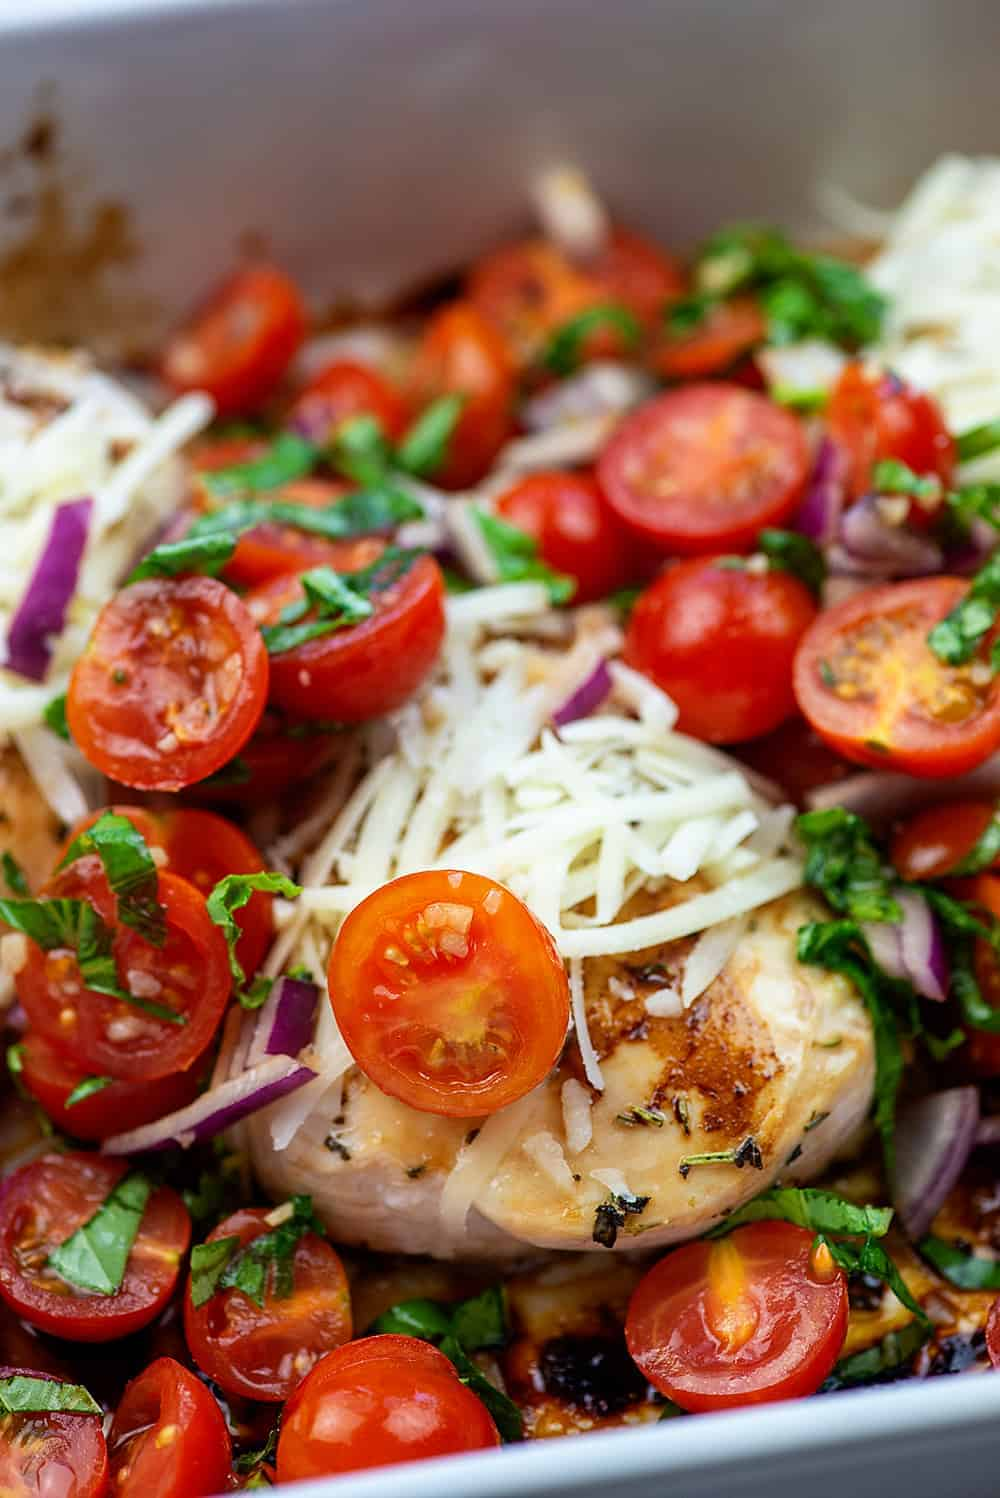 baked chicken with cheese and tomatoes on top